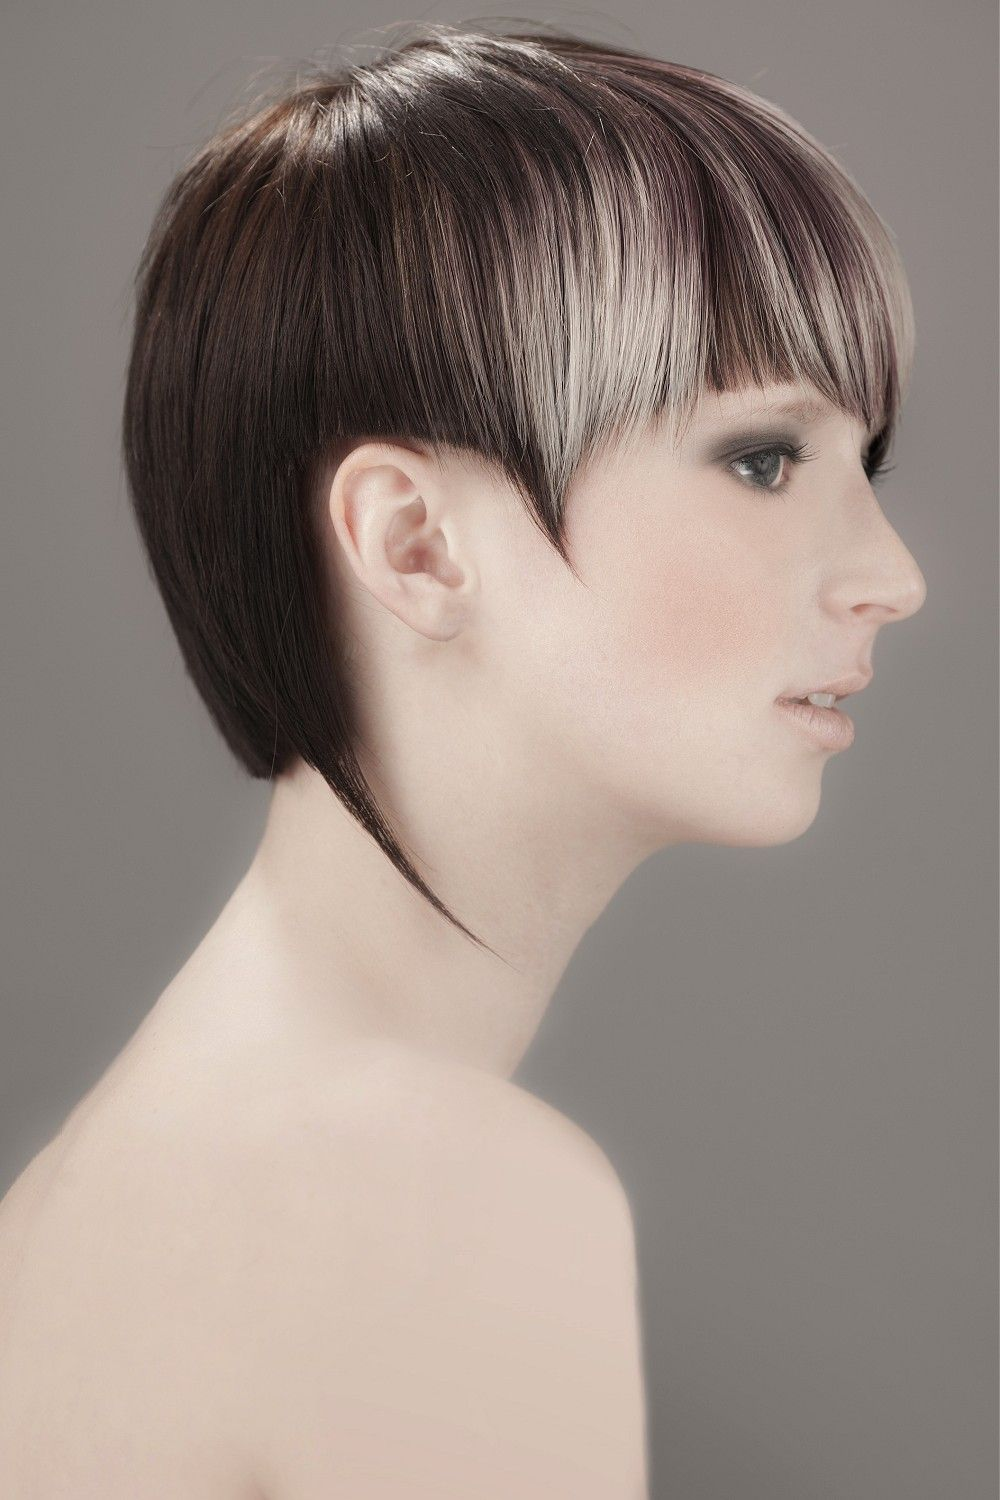 Short brown straight hairstyles provided by salon visage create